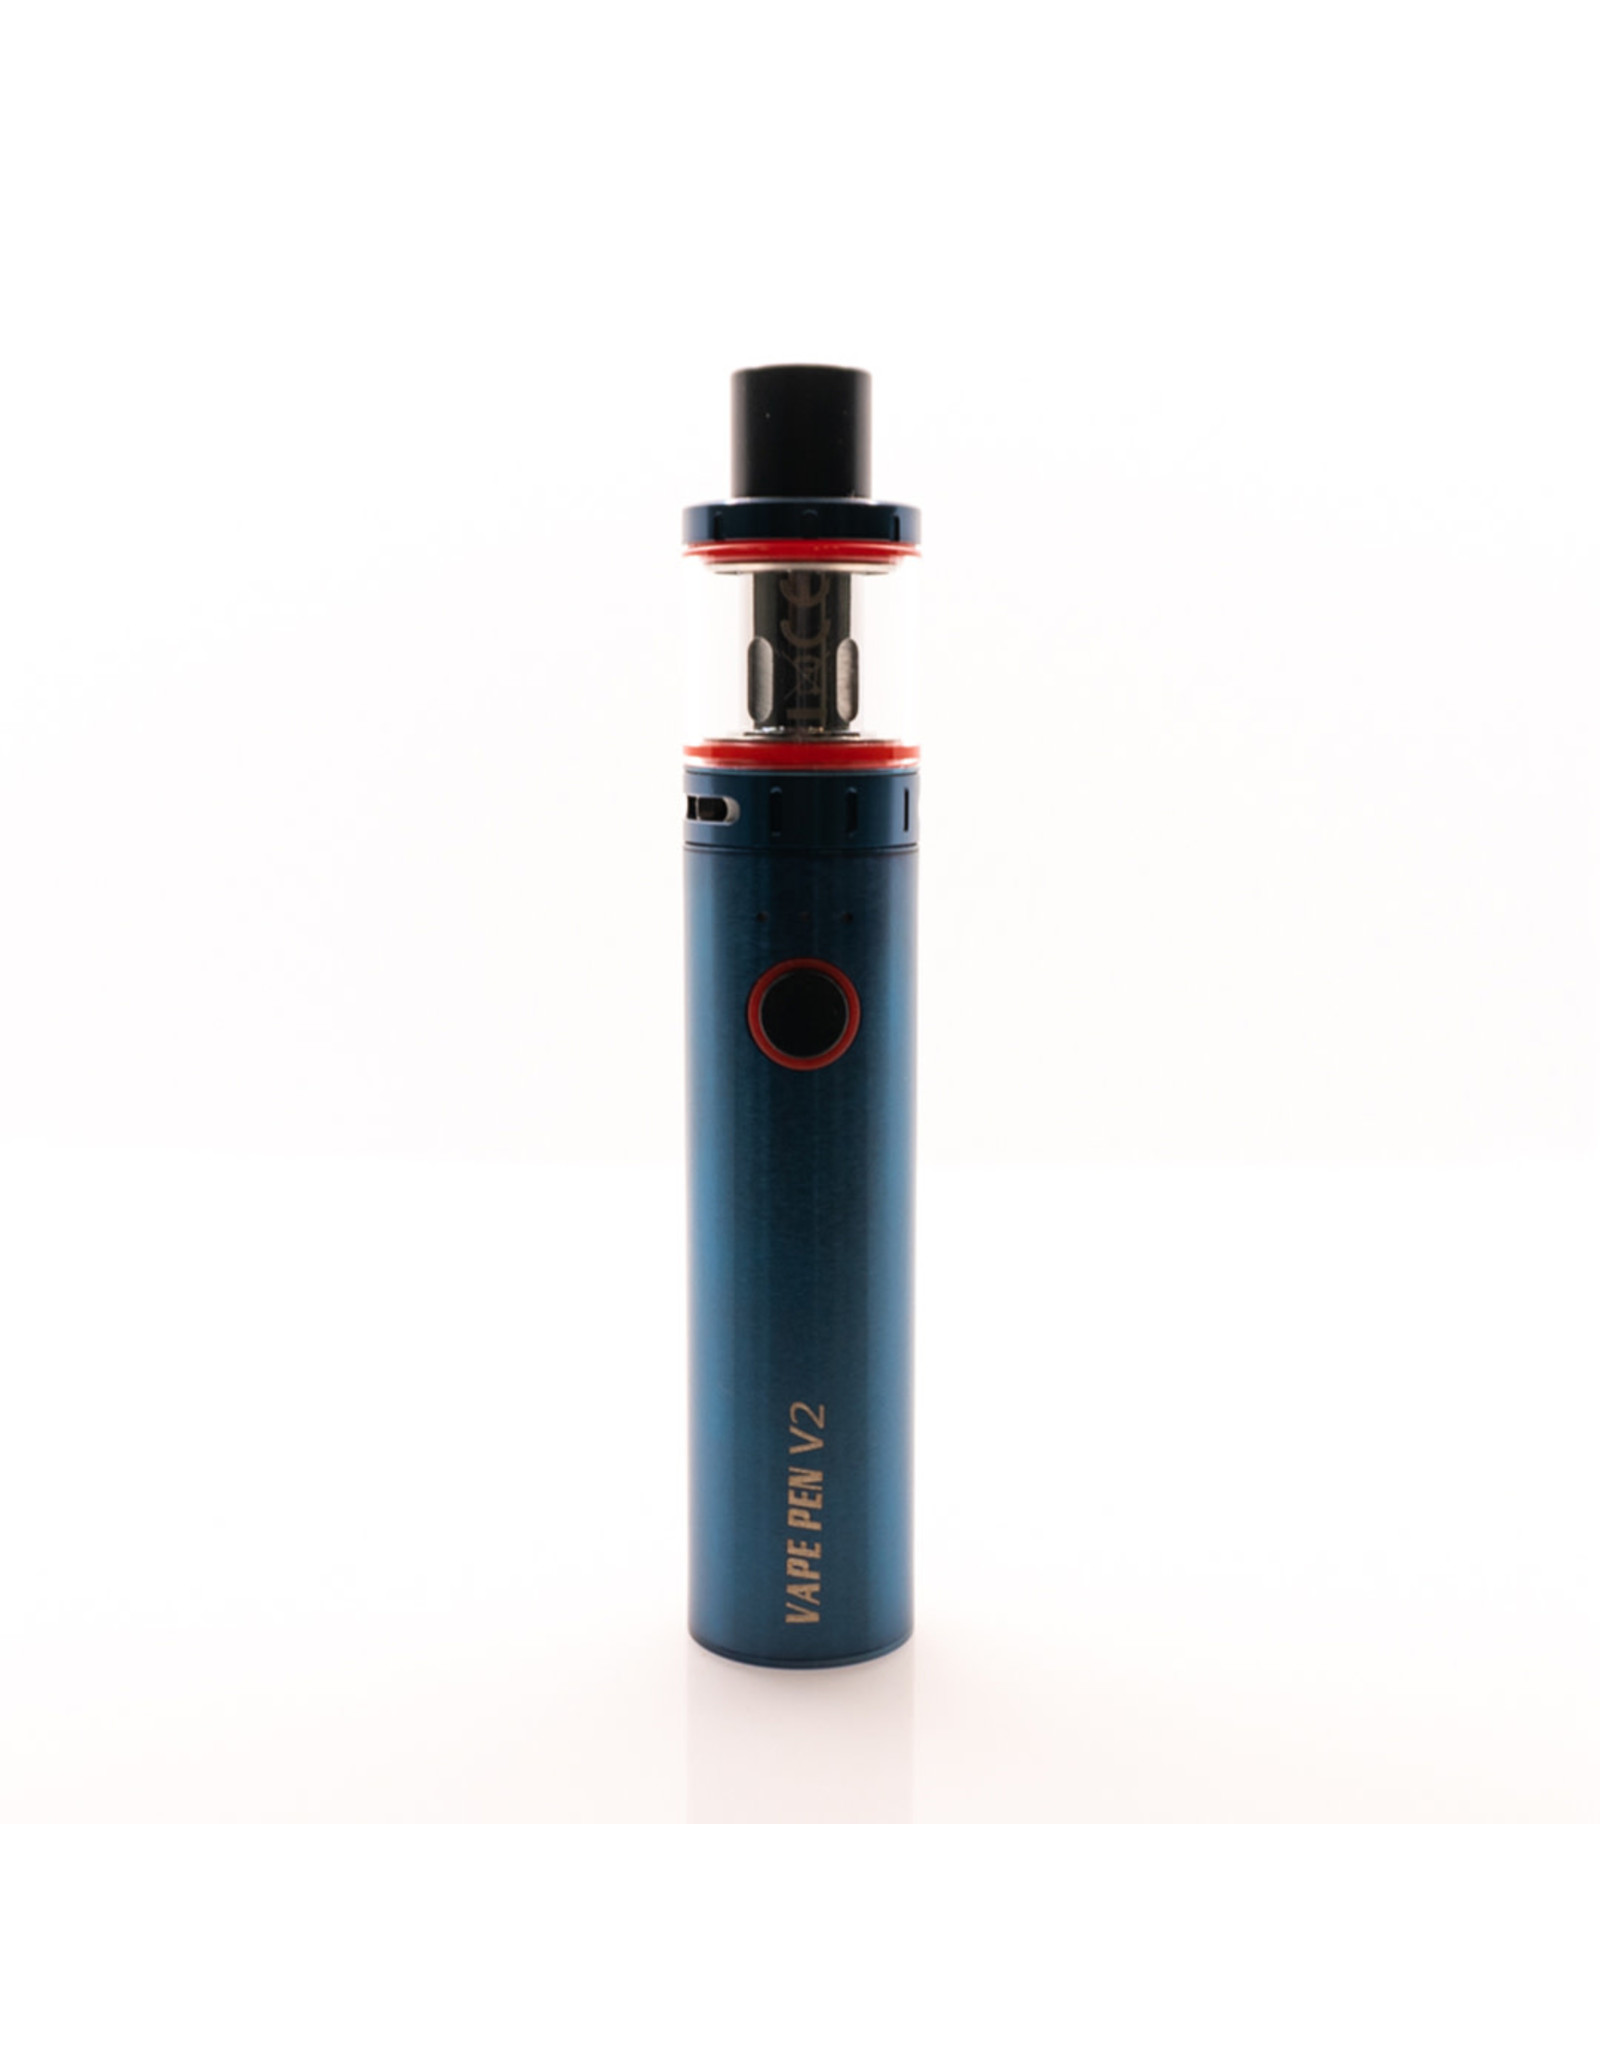 SMOK SMOK: Vape Pen V2 Kit-